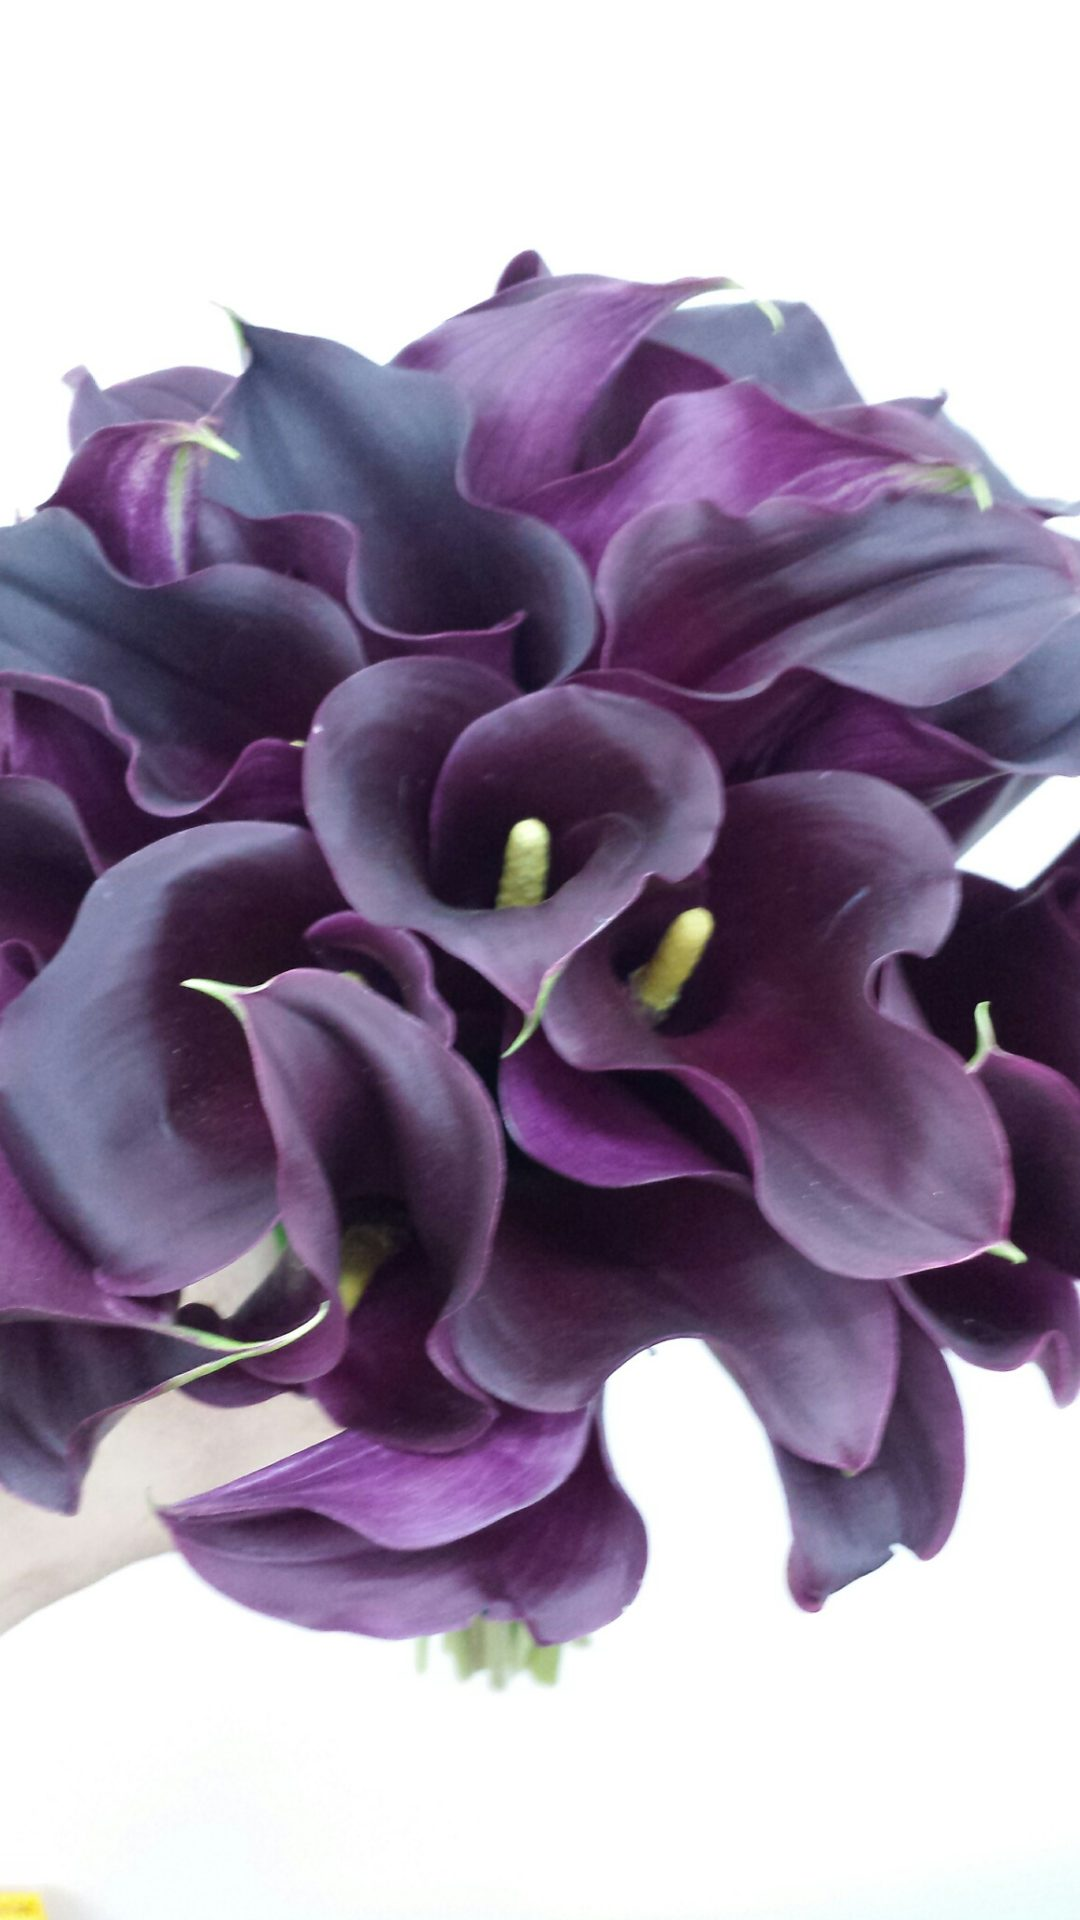 Compact bouquet of black Calla Lilies